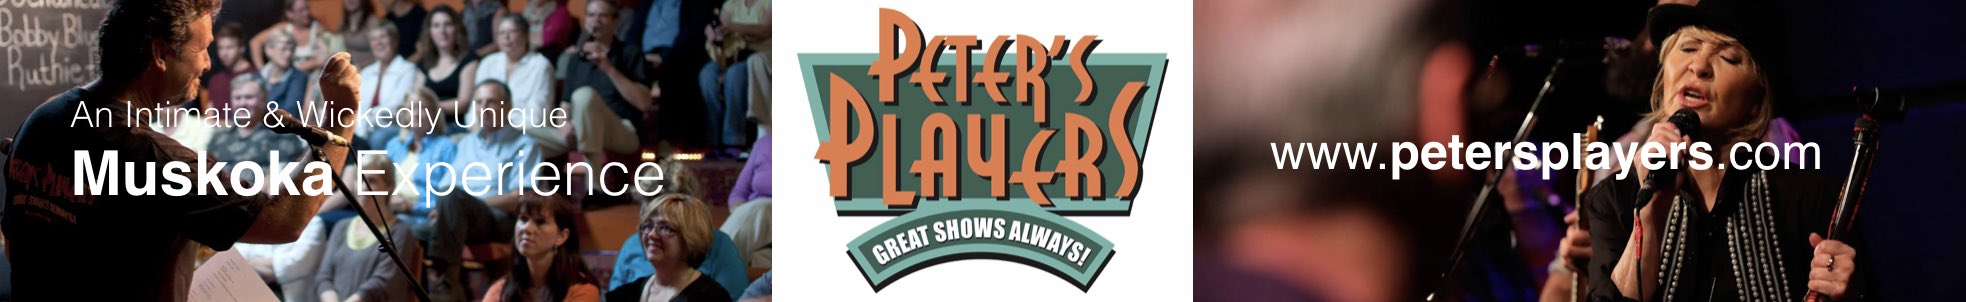 Peters Players Ad 01